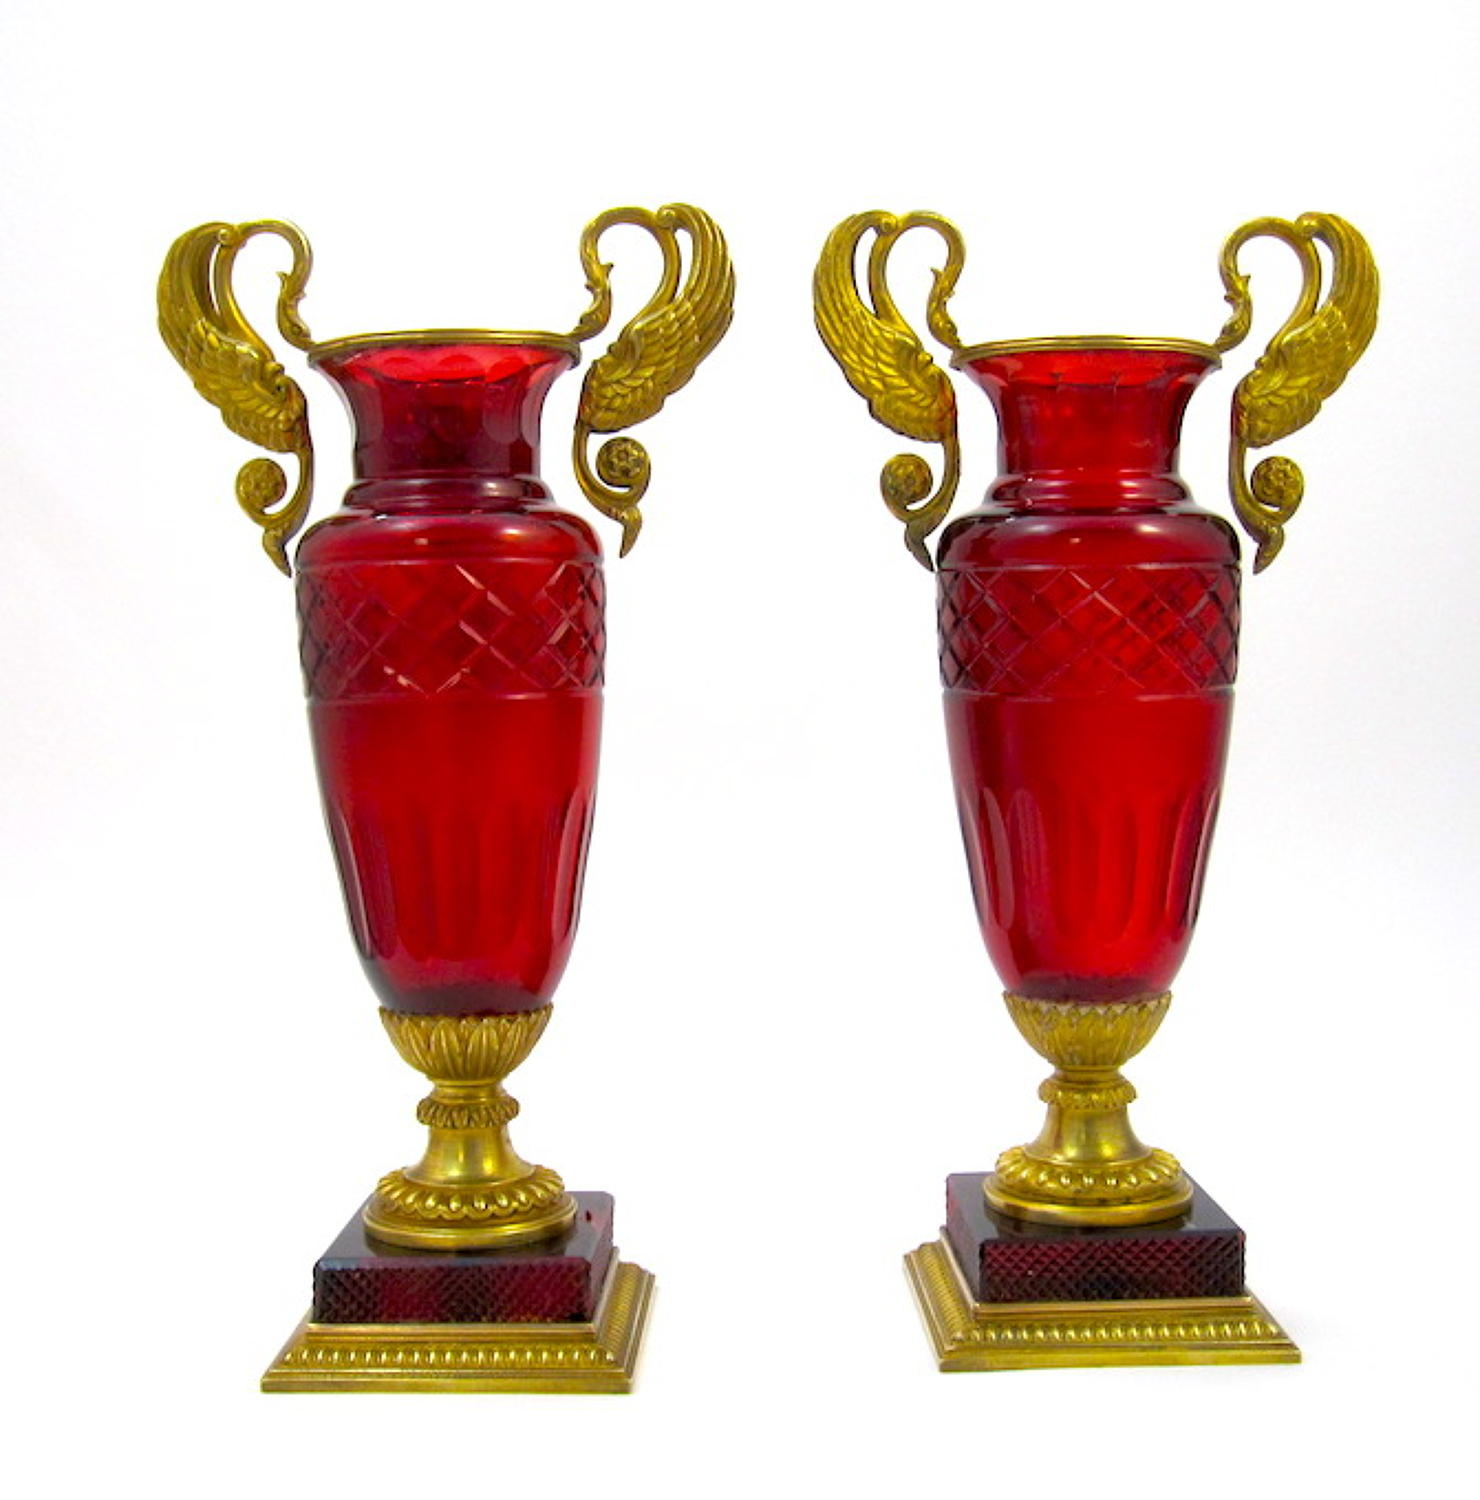 A Pair of Elegant Antique Empire Baccarat Red Glass Vases